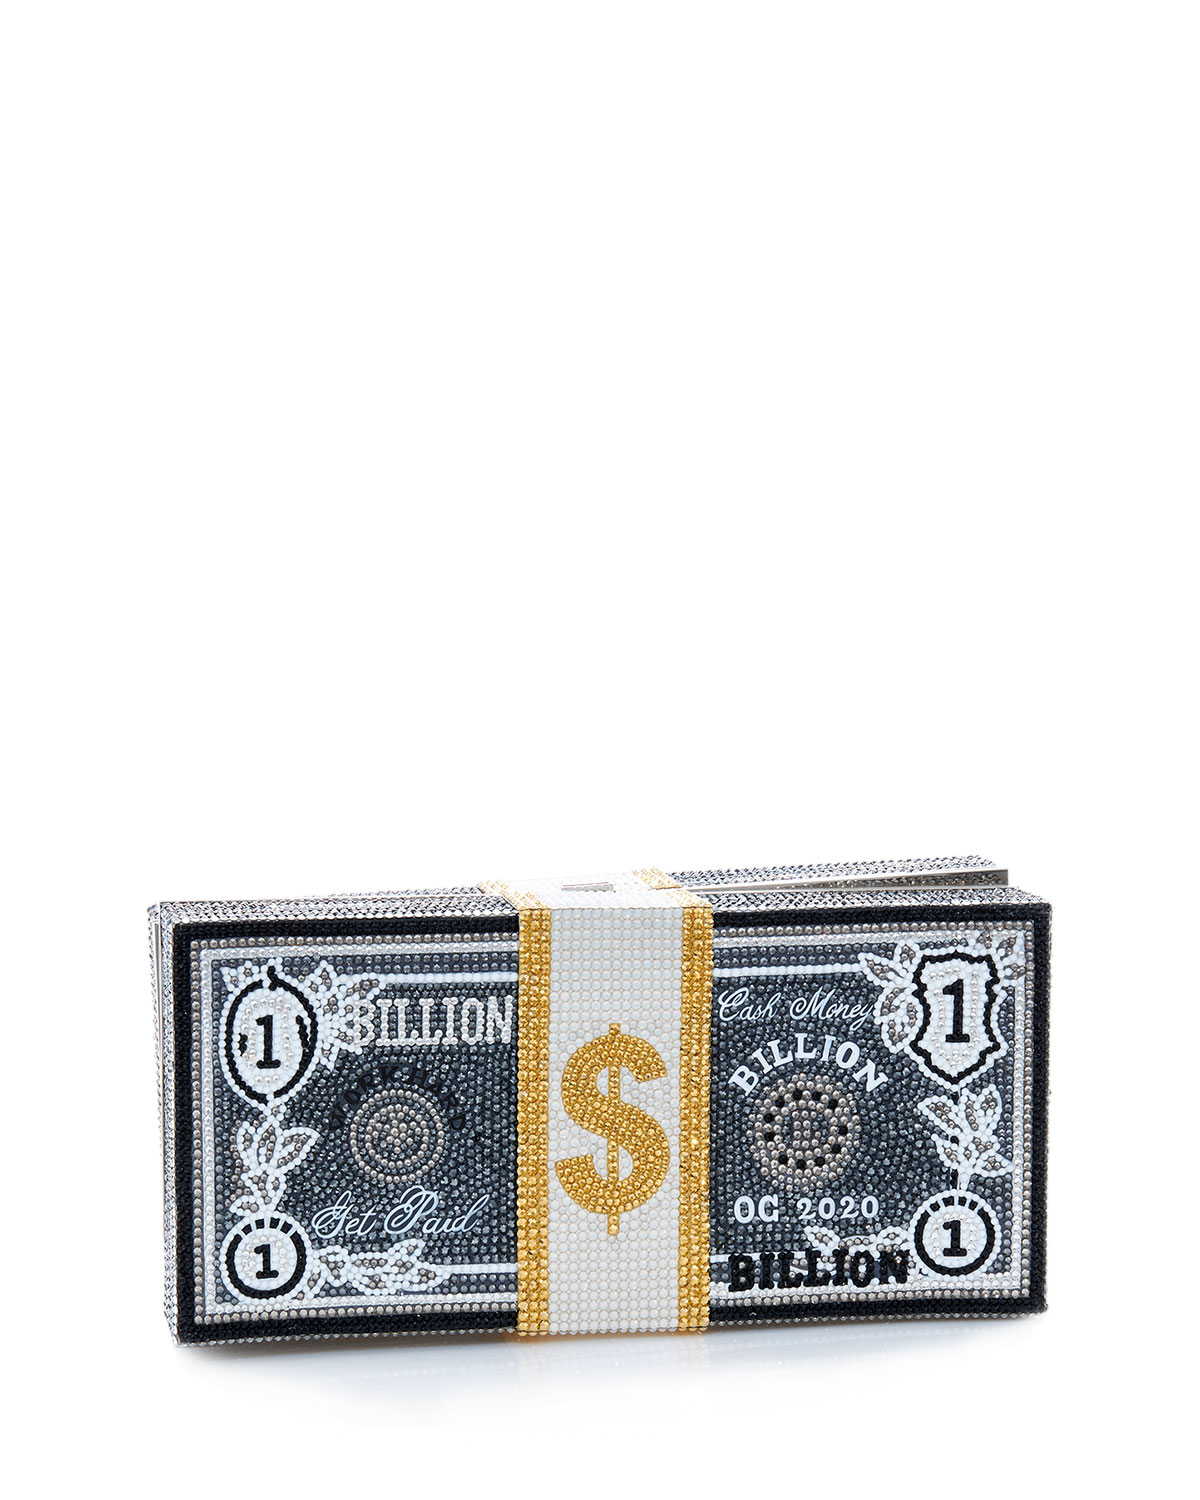 Judith Leiber Leathers STACK OF CASH BILLIONS CLUTCH BAG